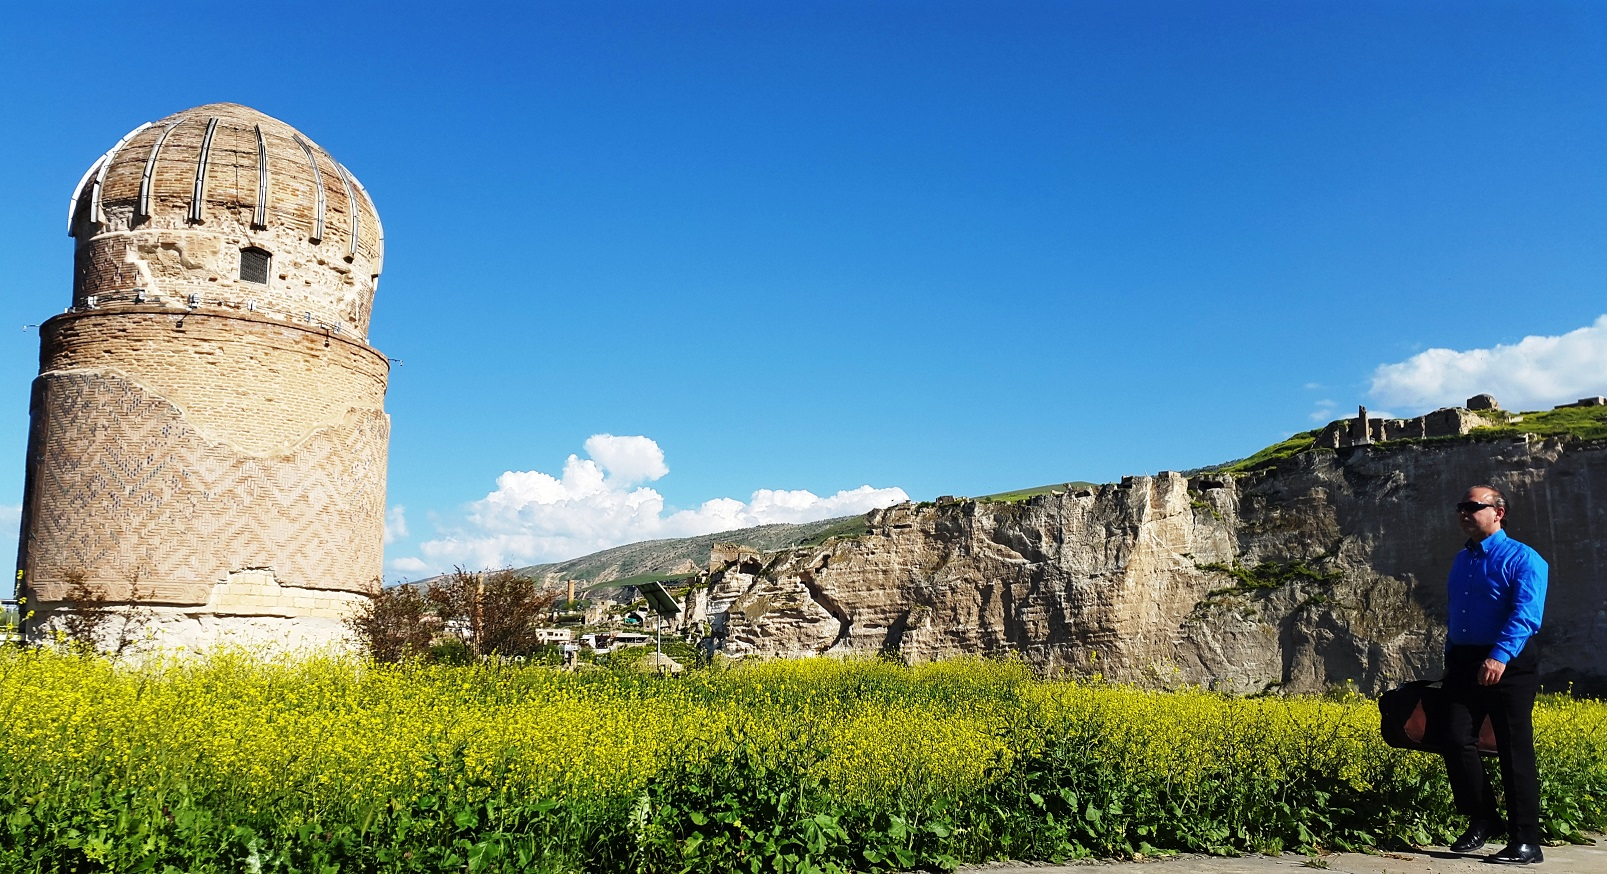 Zeynel Bey's Tomb in Hasankeyf, dating from 1473, has since been lifted and carried away!